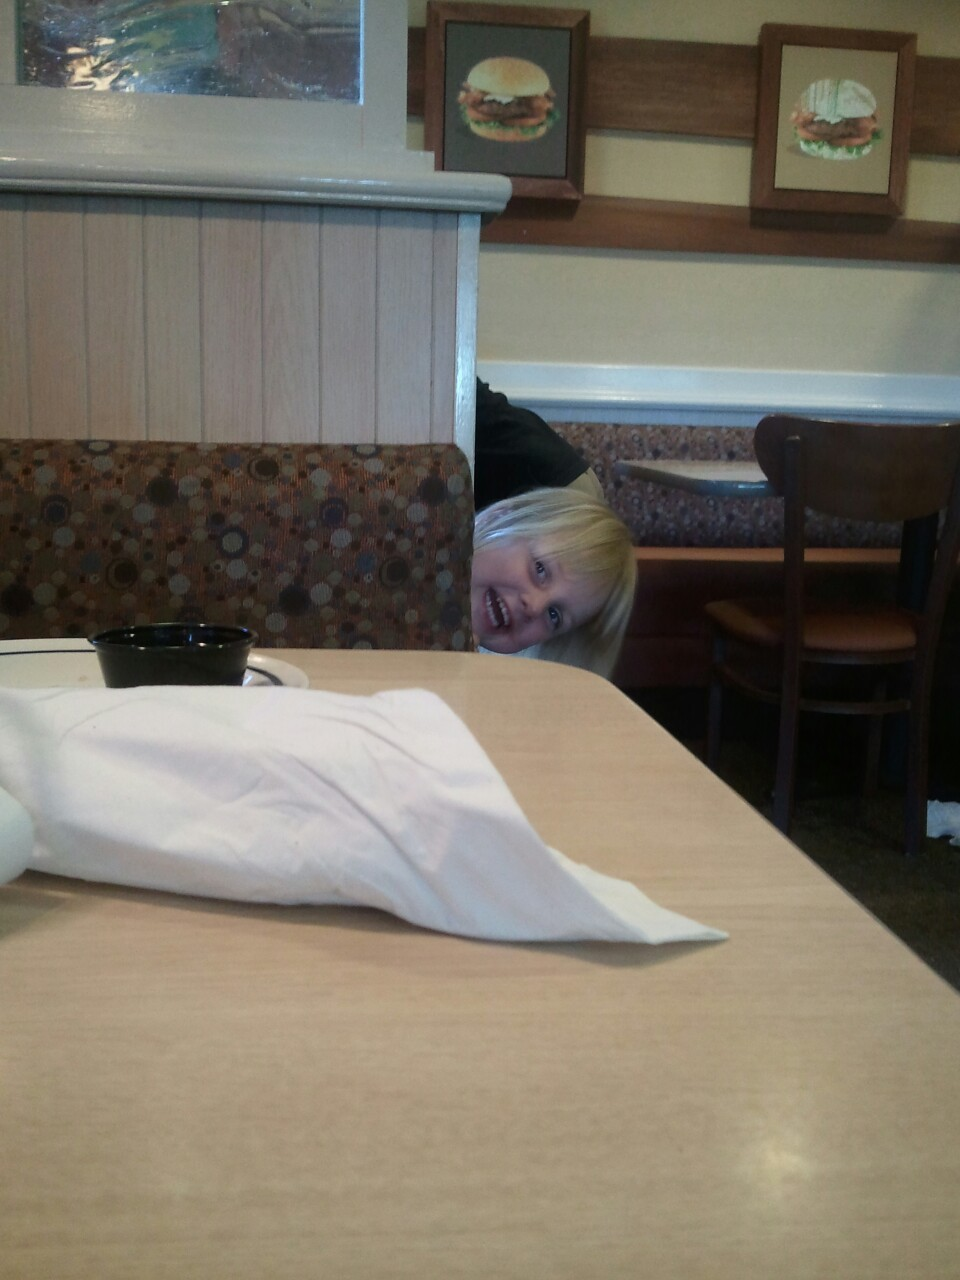 edward-the-cat:  This girl was tormenting me at iHop while I was trying to eat my eggs. Bitch.  lmfaooooo